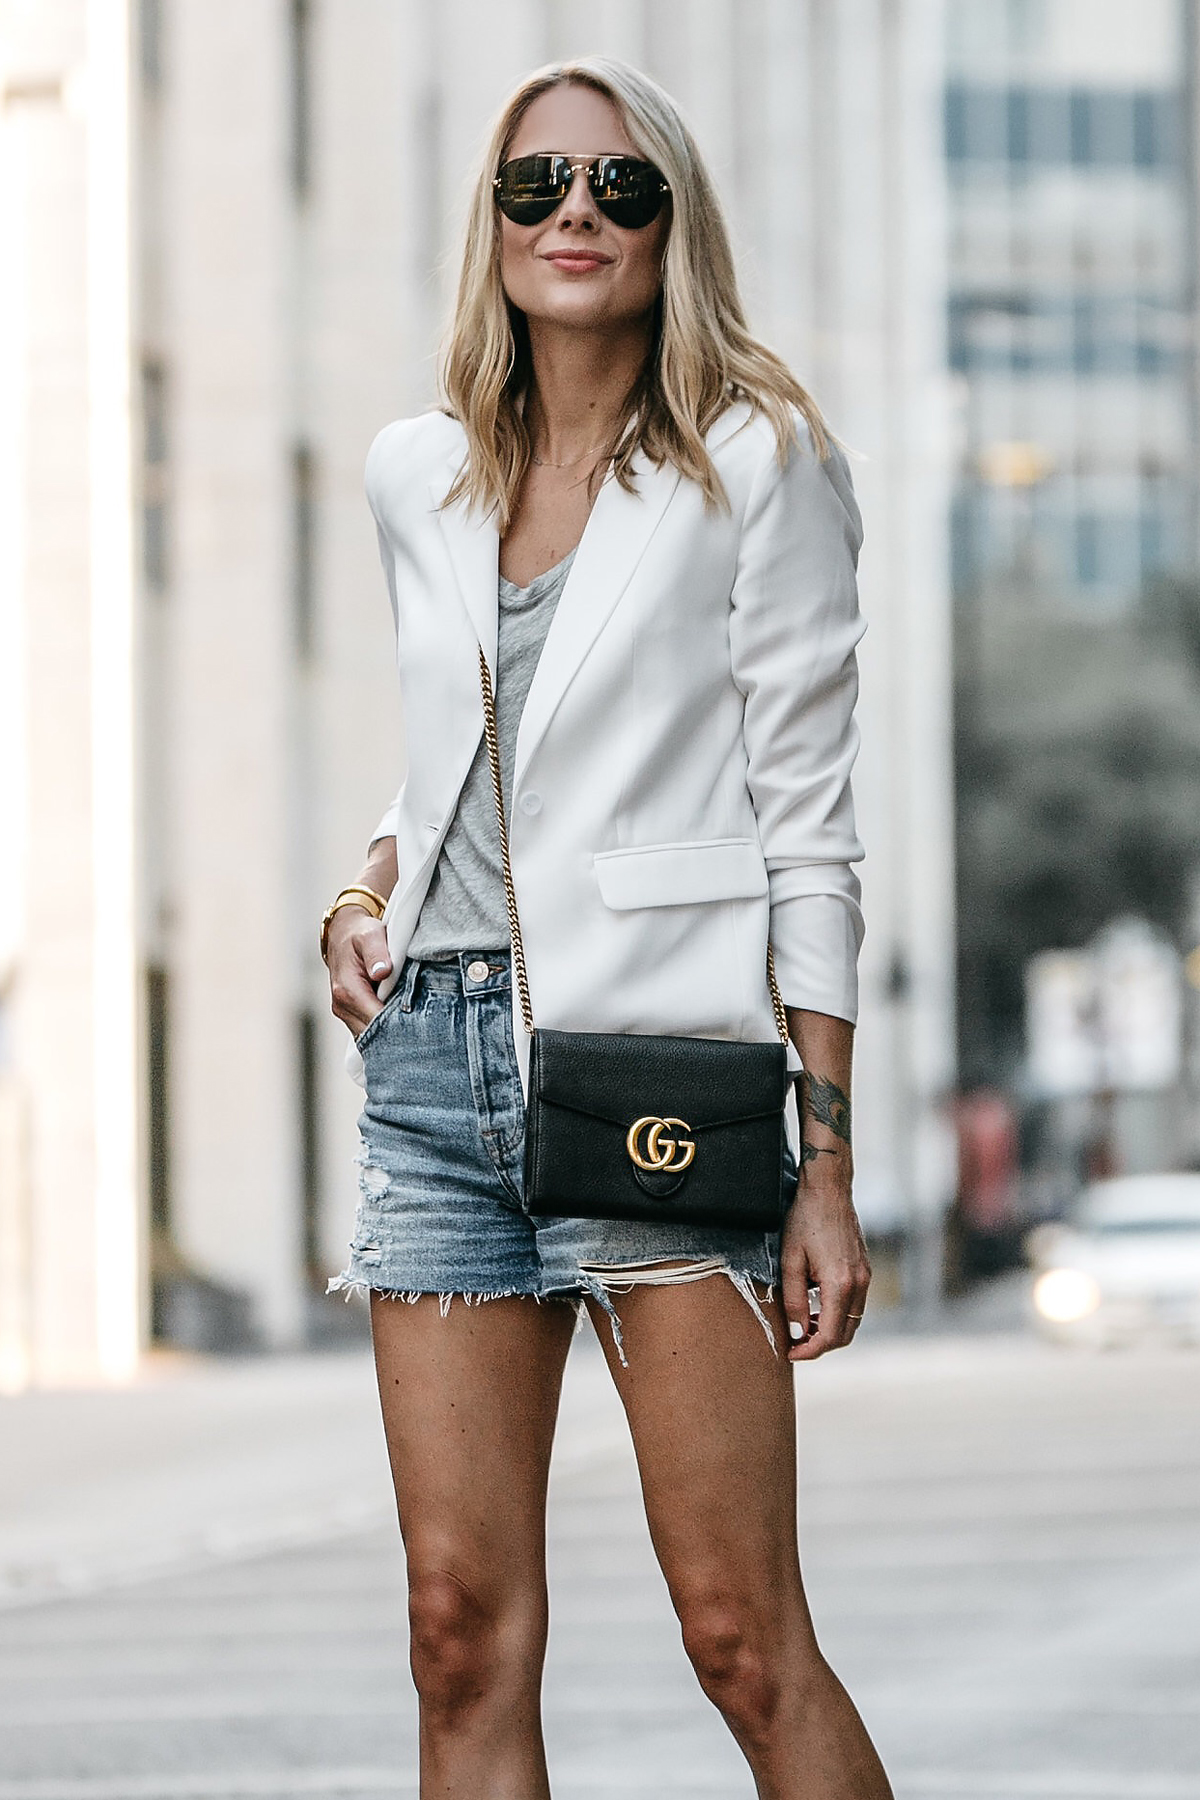 Blonde Woman Wearing Nordstrom White Blazer Everlane Grey Tshirt Topshop Ripped Denim Shorts Outfit Gucci Marmont Handbag Fashion Jackson Dallas Blogger Fashion Blogger Street Style